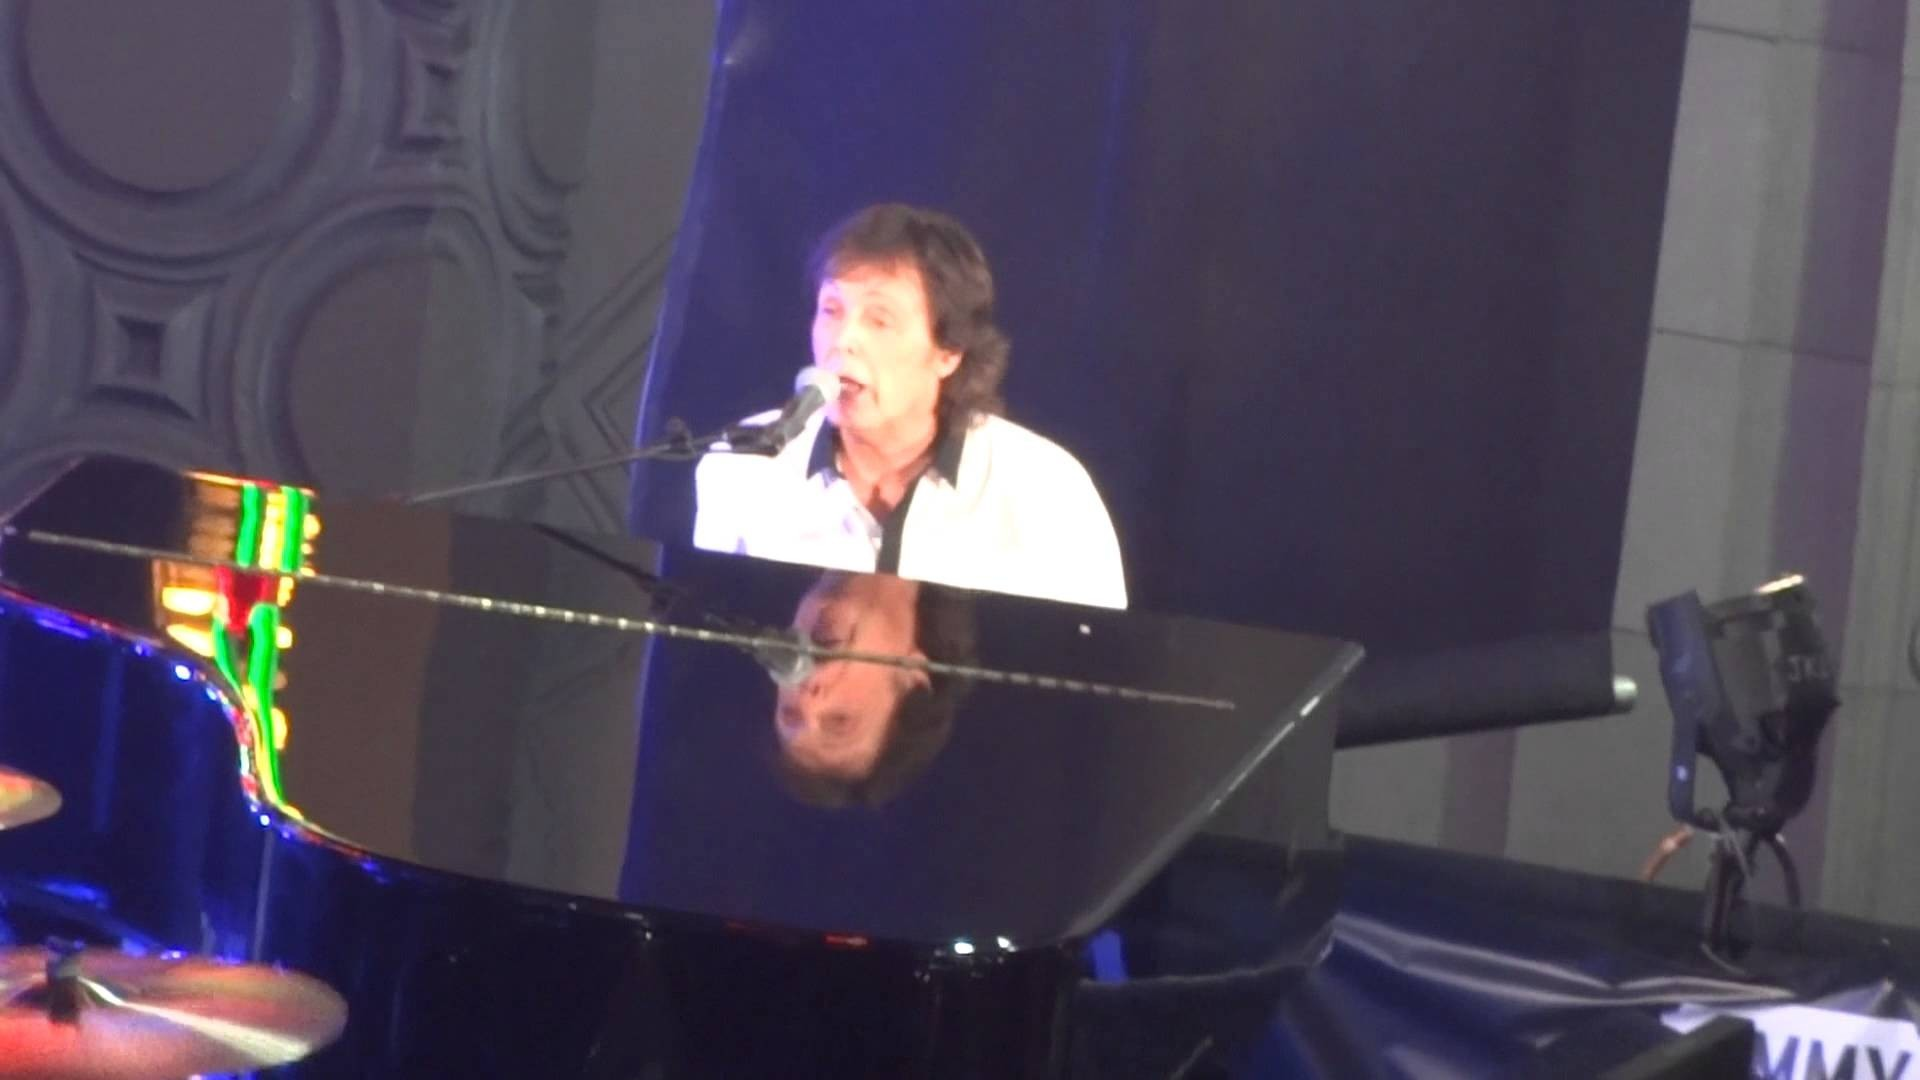 Paul McCartney rocks Hollywood performing 'Let It Be' for 'Kimmel'